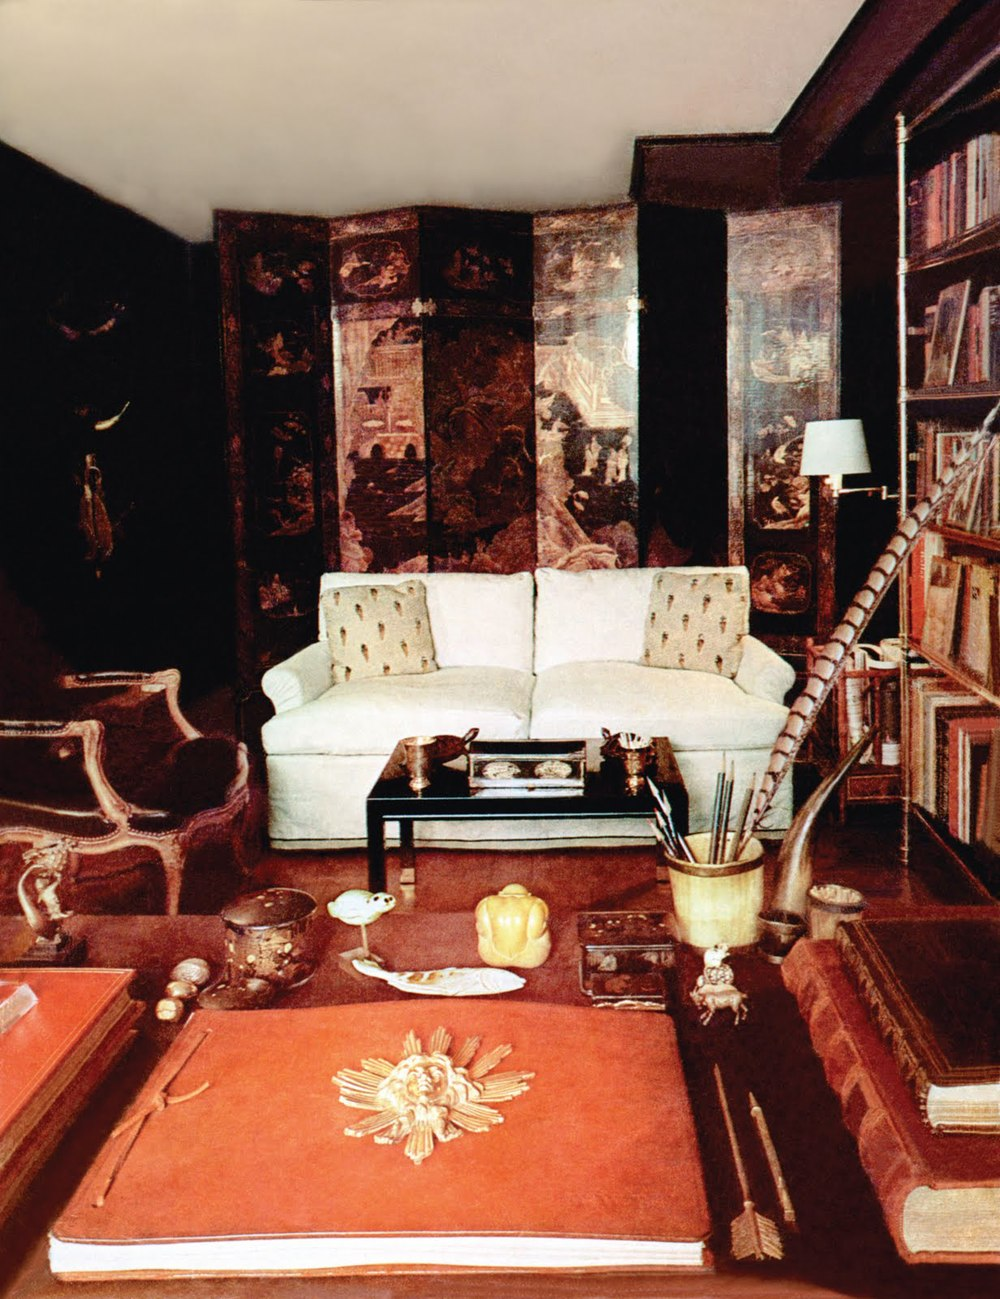 baldwins new york apartment at 106 east 61st street had a korean screen behind the cream sofa and dark walls he liked a classic lawson sofa silhouette - Billy Baldwin Interior Designer